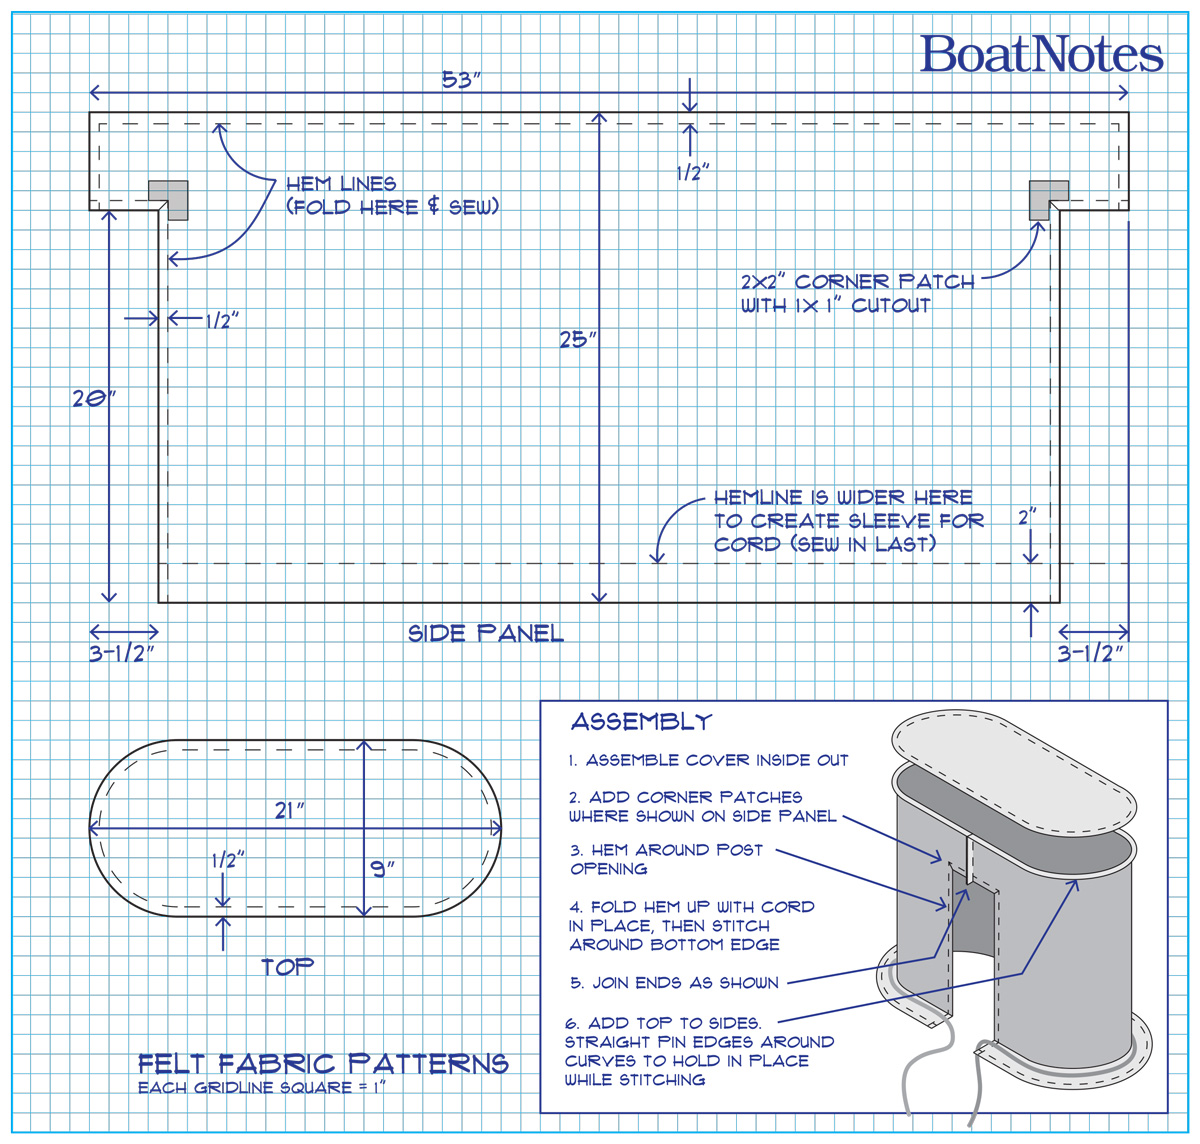 BoatNotes Fender Cover Pattern